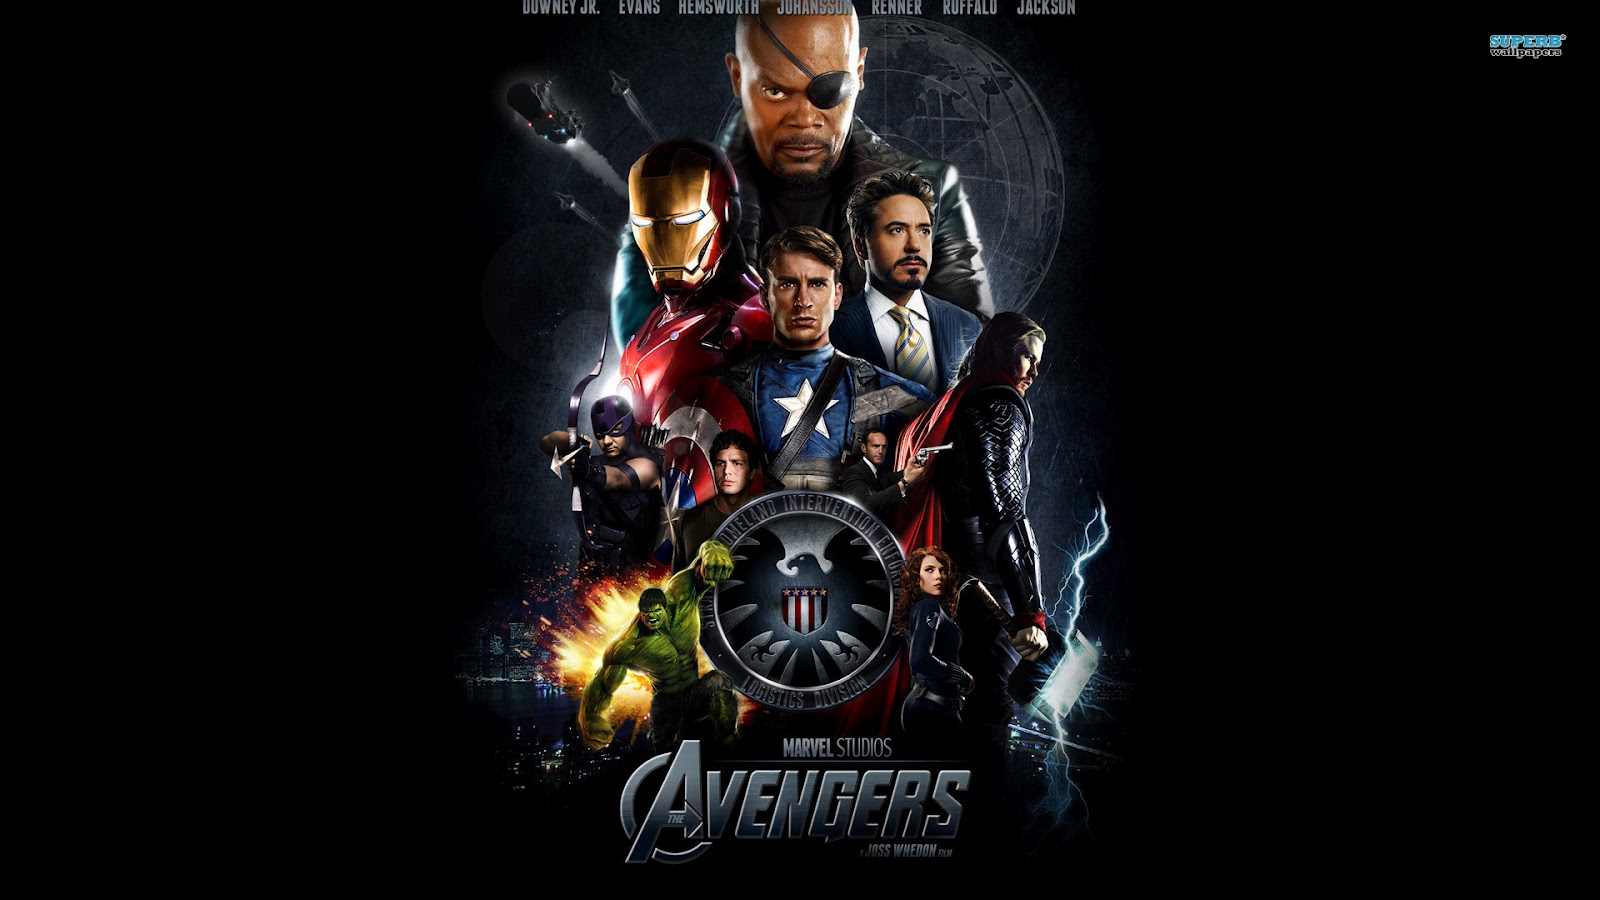 Avengers Wallpaper: Free Hd Wallpapers: The Avengers Hd Wallpapers